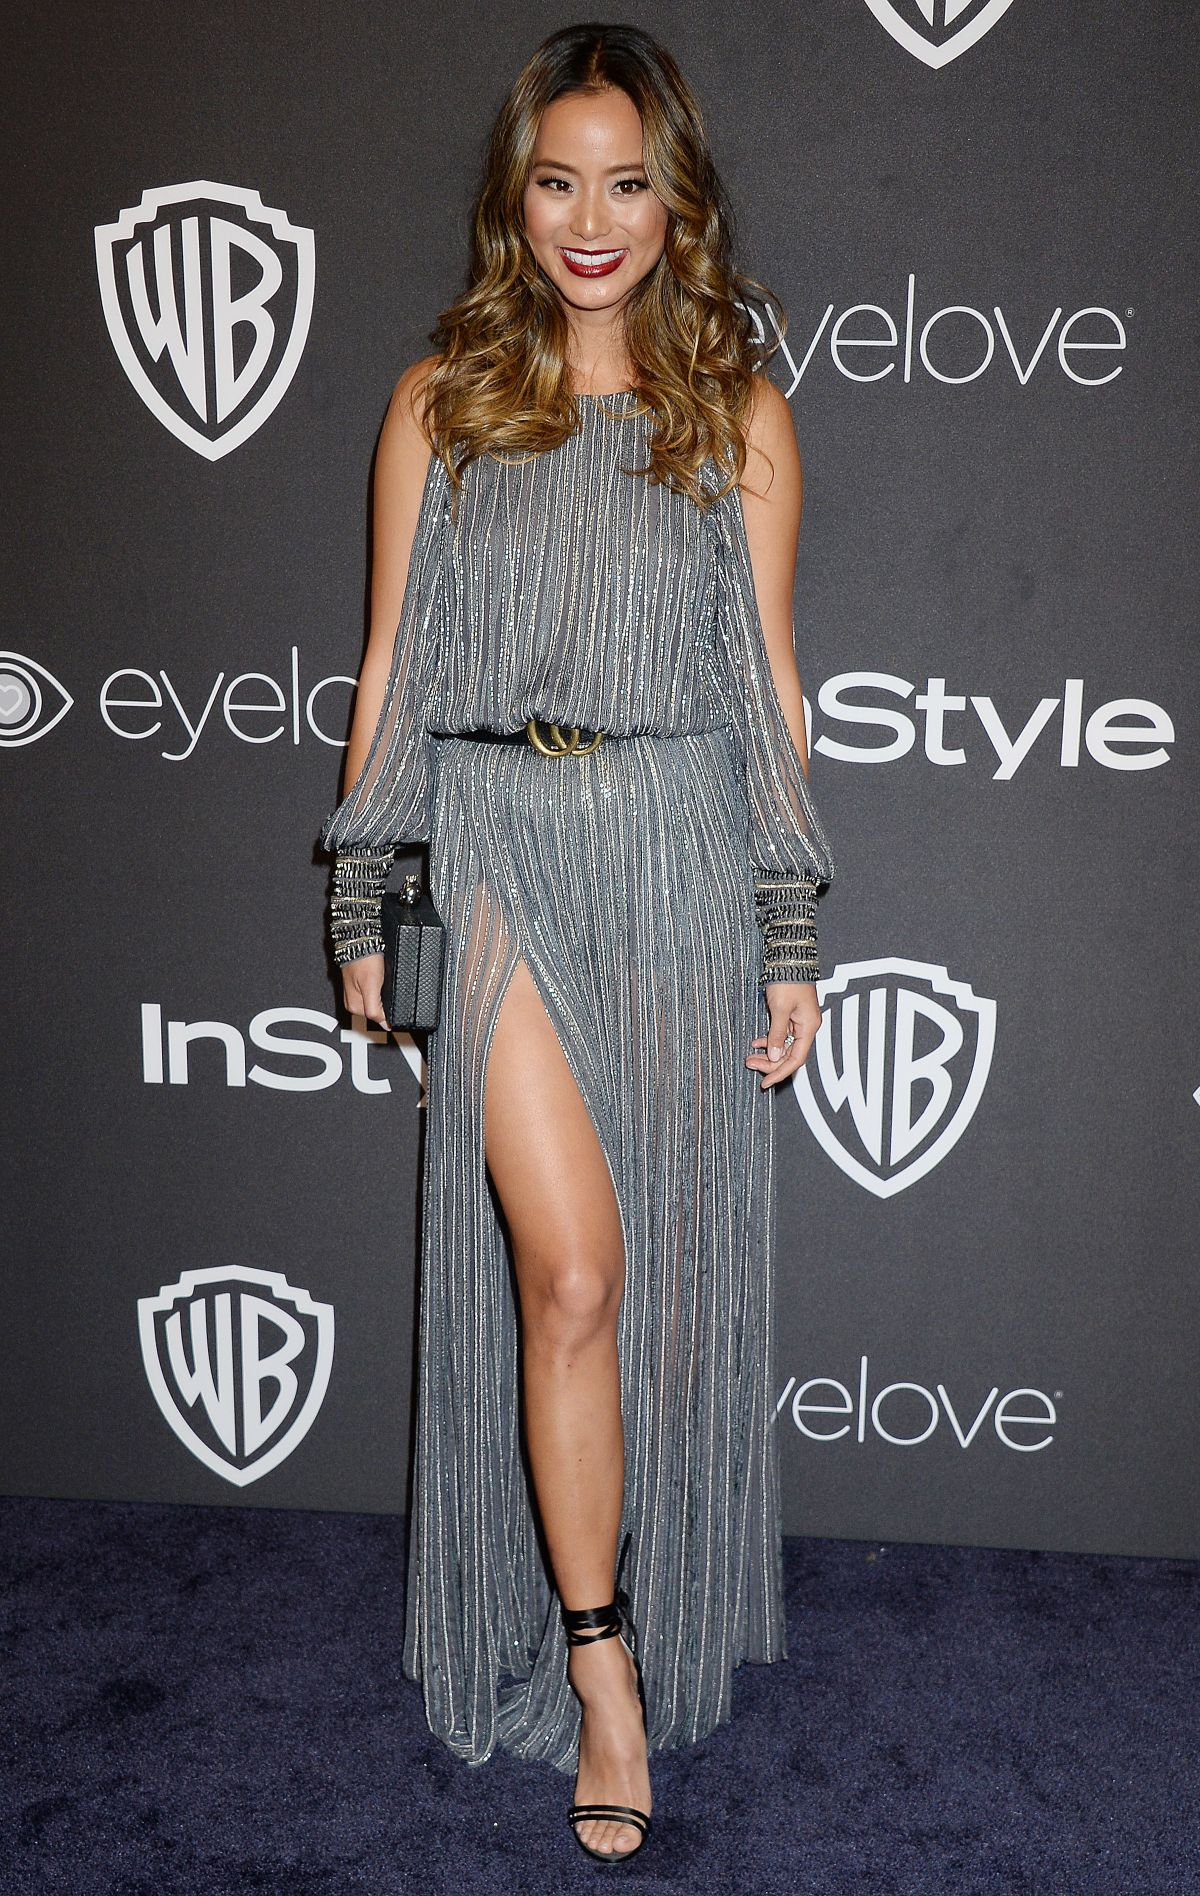 JAMIE CHUNG at Warner Bros. Pictures & Instyle's 18th Annual Golden Globes Party in Beverly Hills 01/08/2017